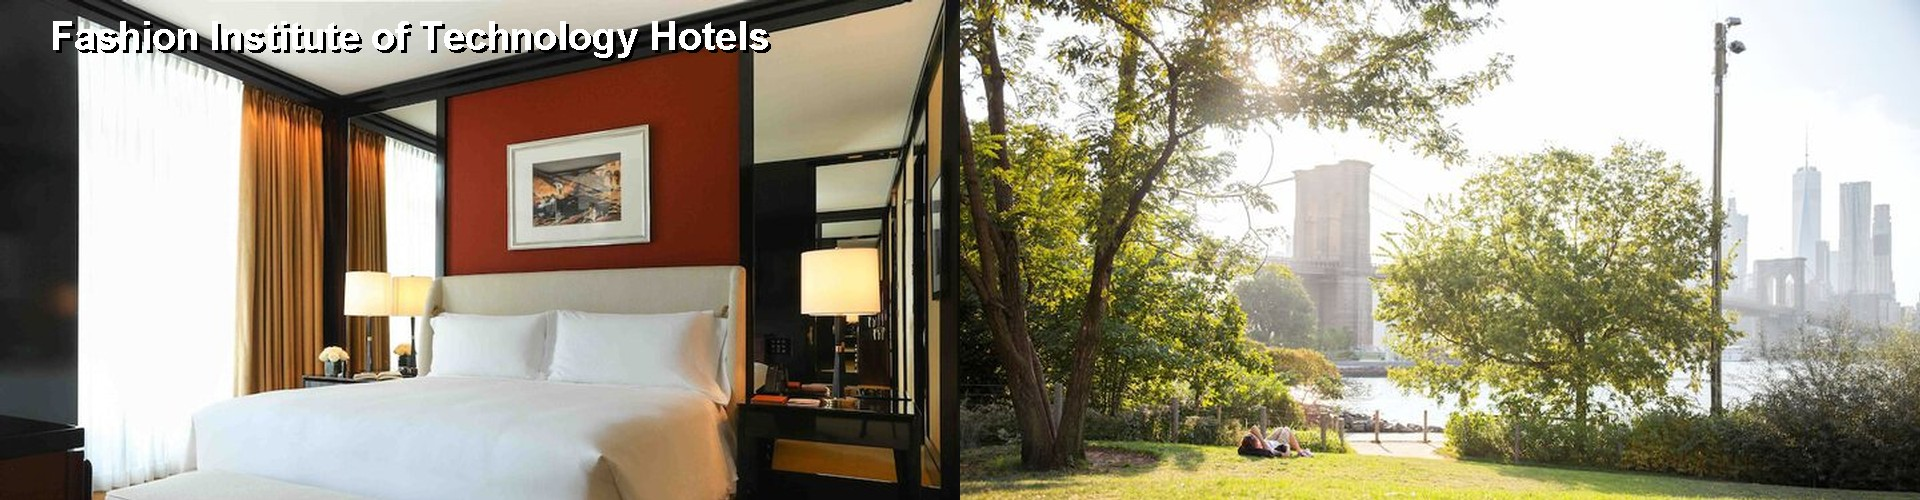 5 Best Hotels near Fashion Institute of Technology